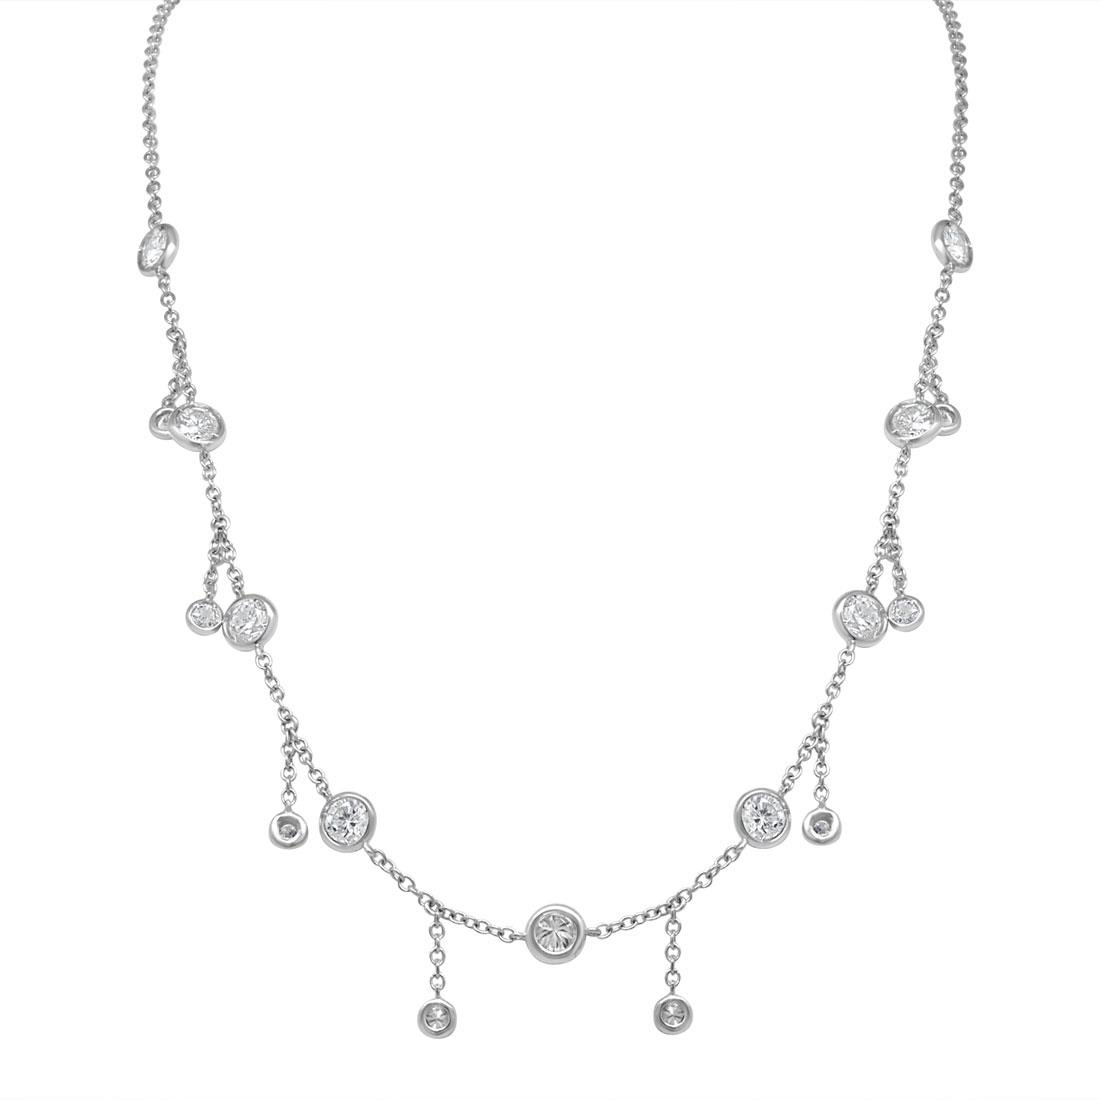 Collana design con diamanti ct. 2,89 - ALFIERI & ST. JOHN